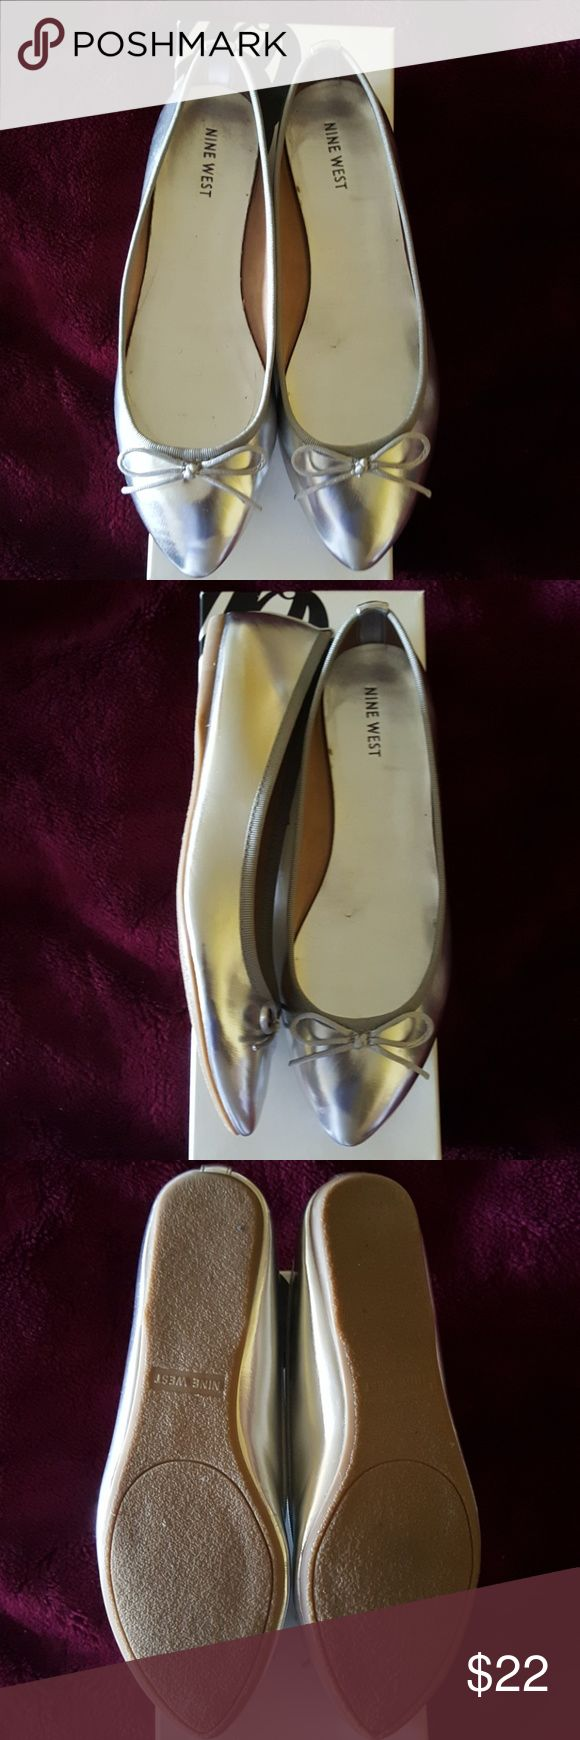 NINE WEST SILVER Ballet Flats Shoes size 7.5 Silver Ballet Shoes Flats size 7.5. Only worn a few times. In excellent condition. Original box included. Nine West Shoes Flats & Loafers